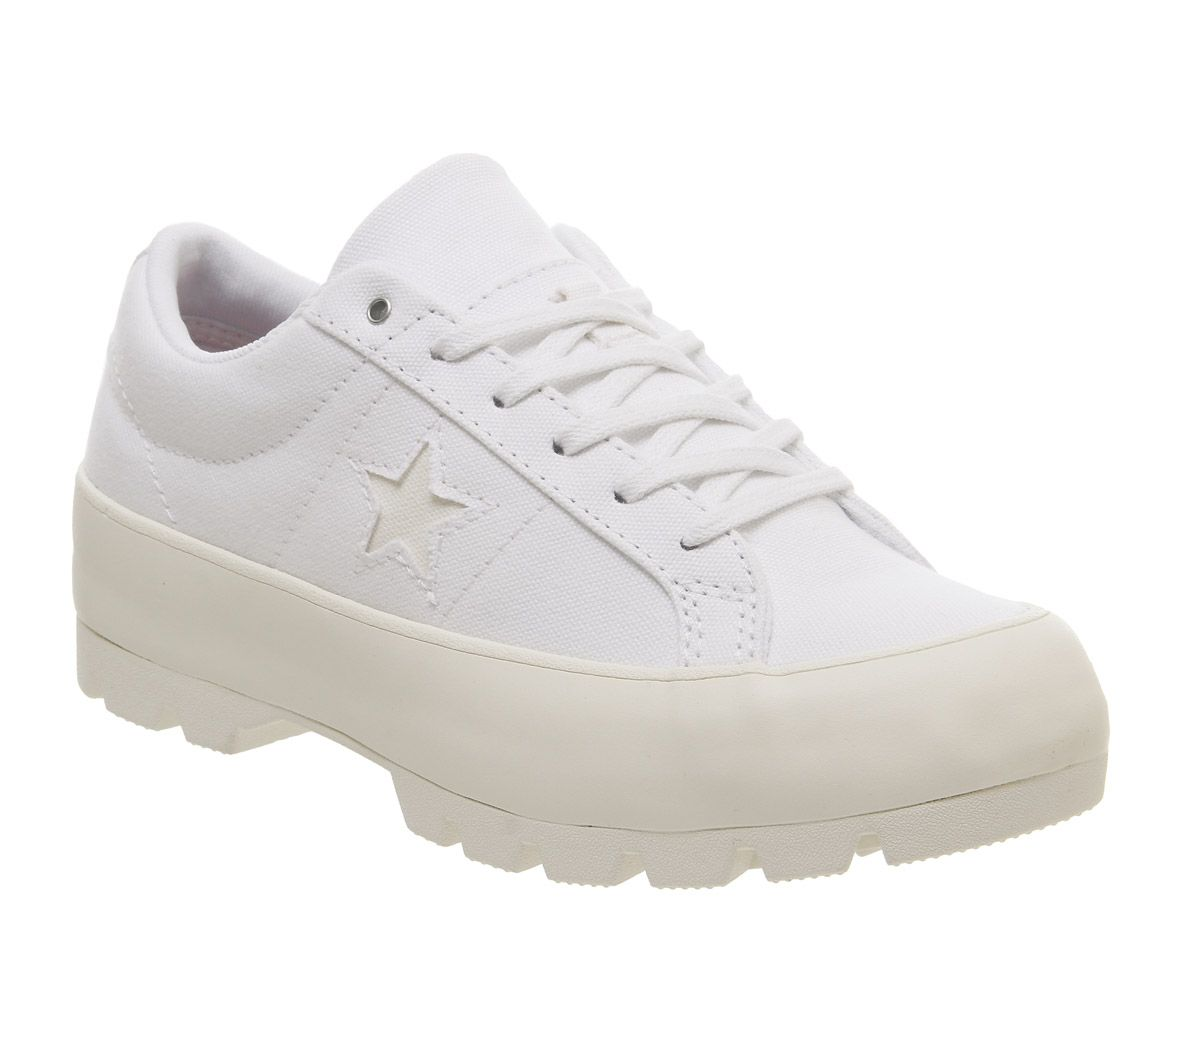 Details about Womens Converse One Star Lugged Ox Trainers White White Egret Trainers Shoes